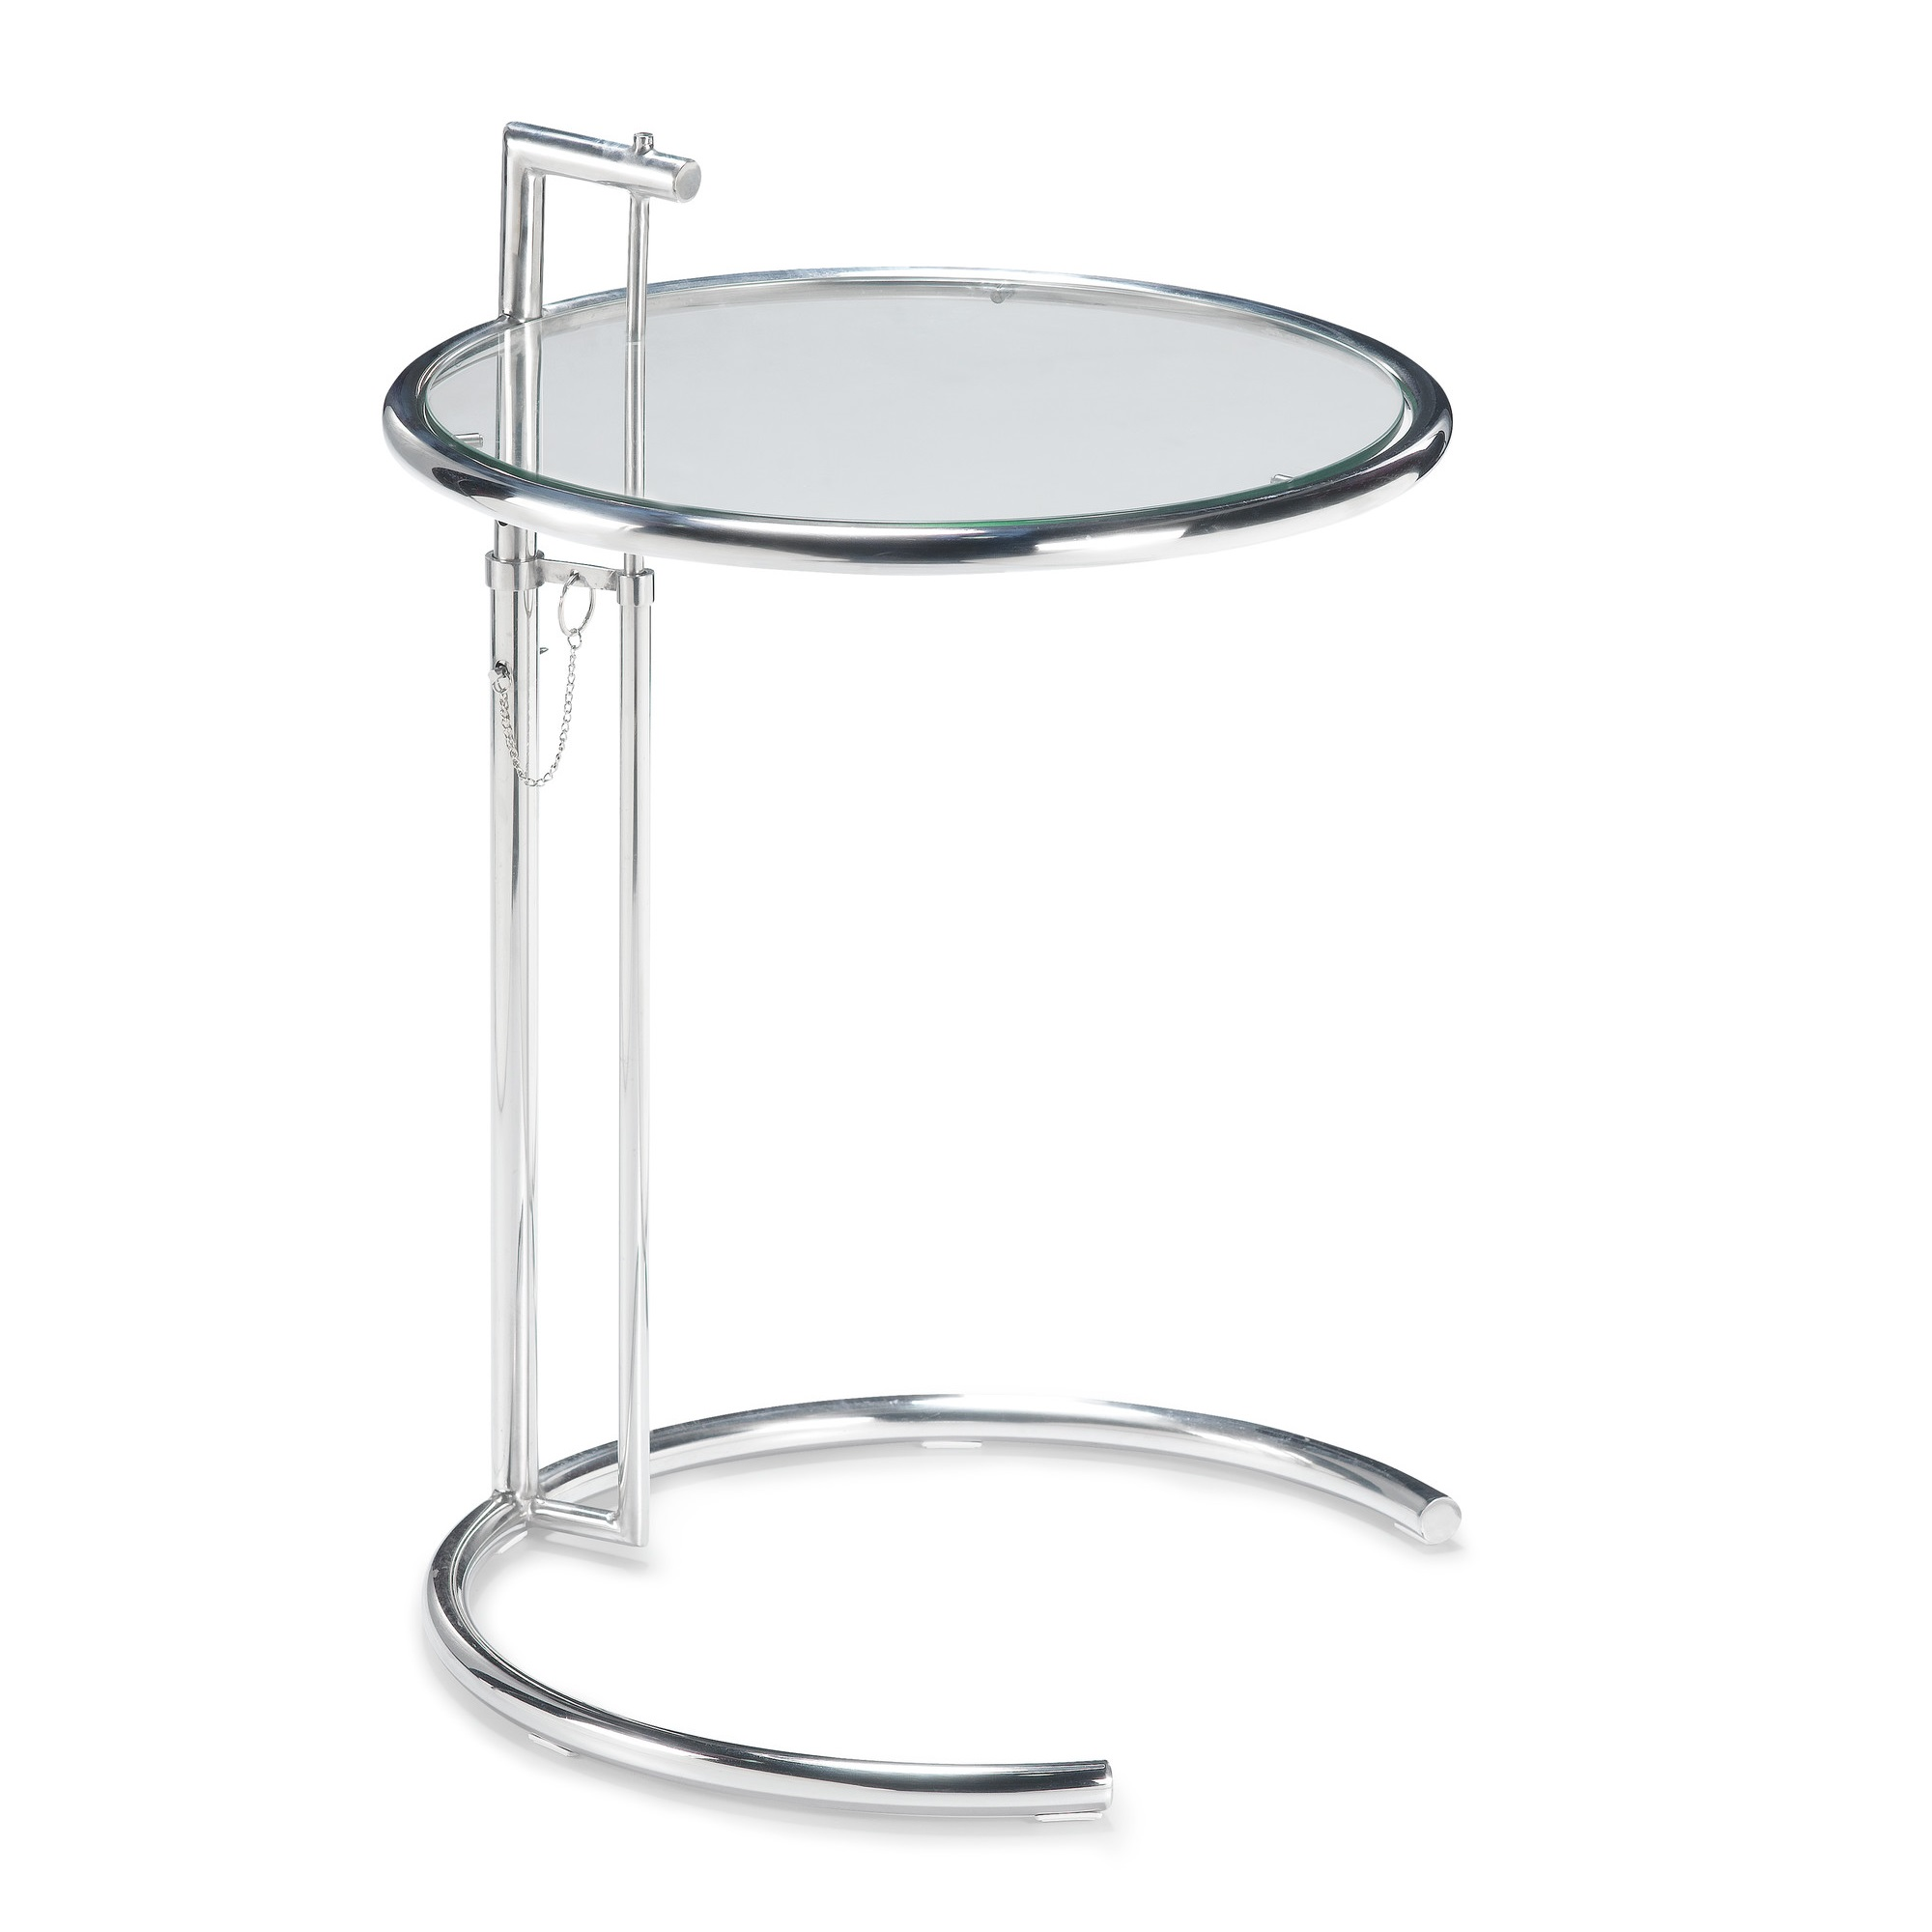 eileen gray side table mikaza meubles modernes montreal modern furniture ottawa. Black Bedroom Furniture Sets. Home Design Ideas